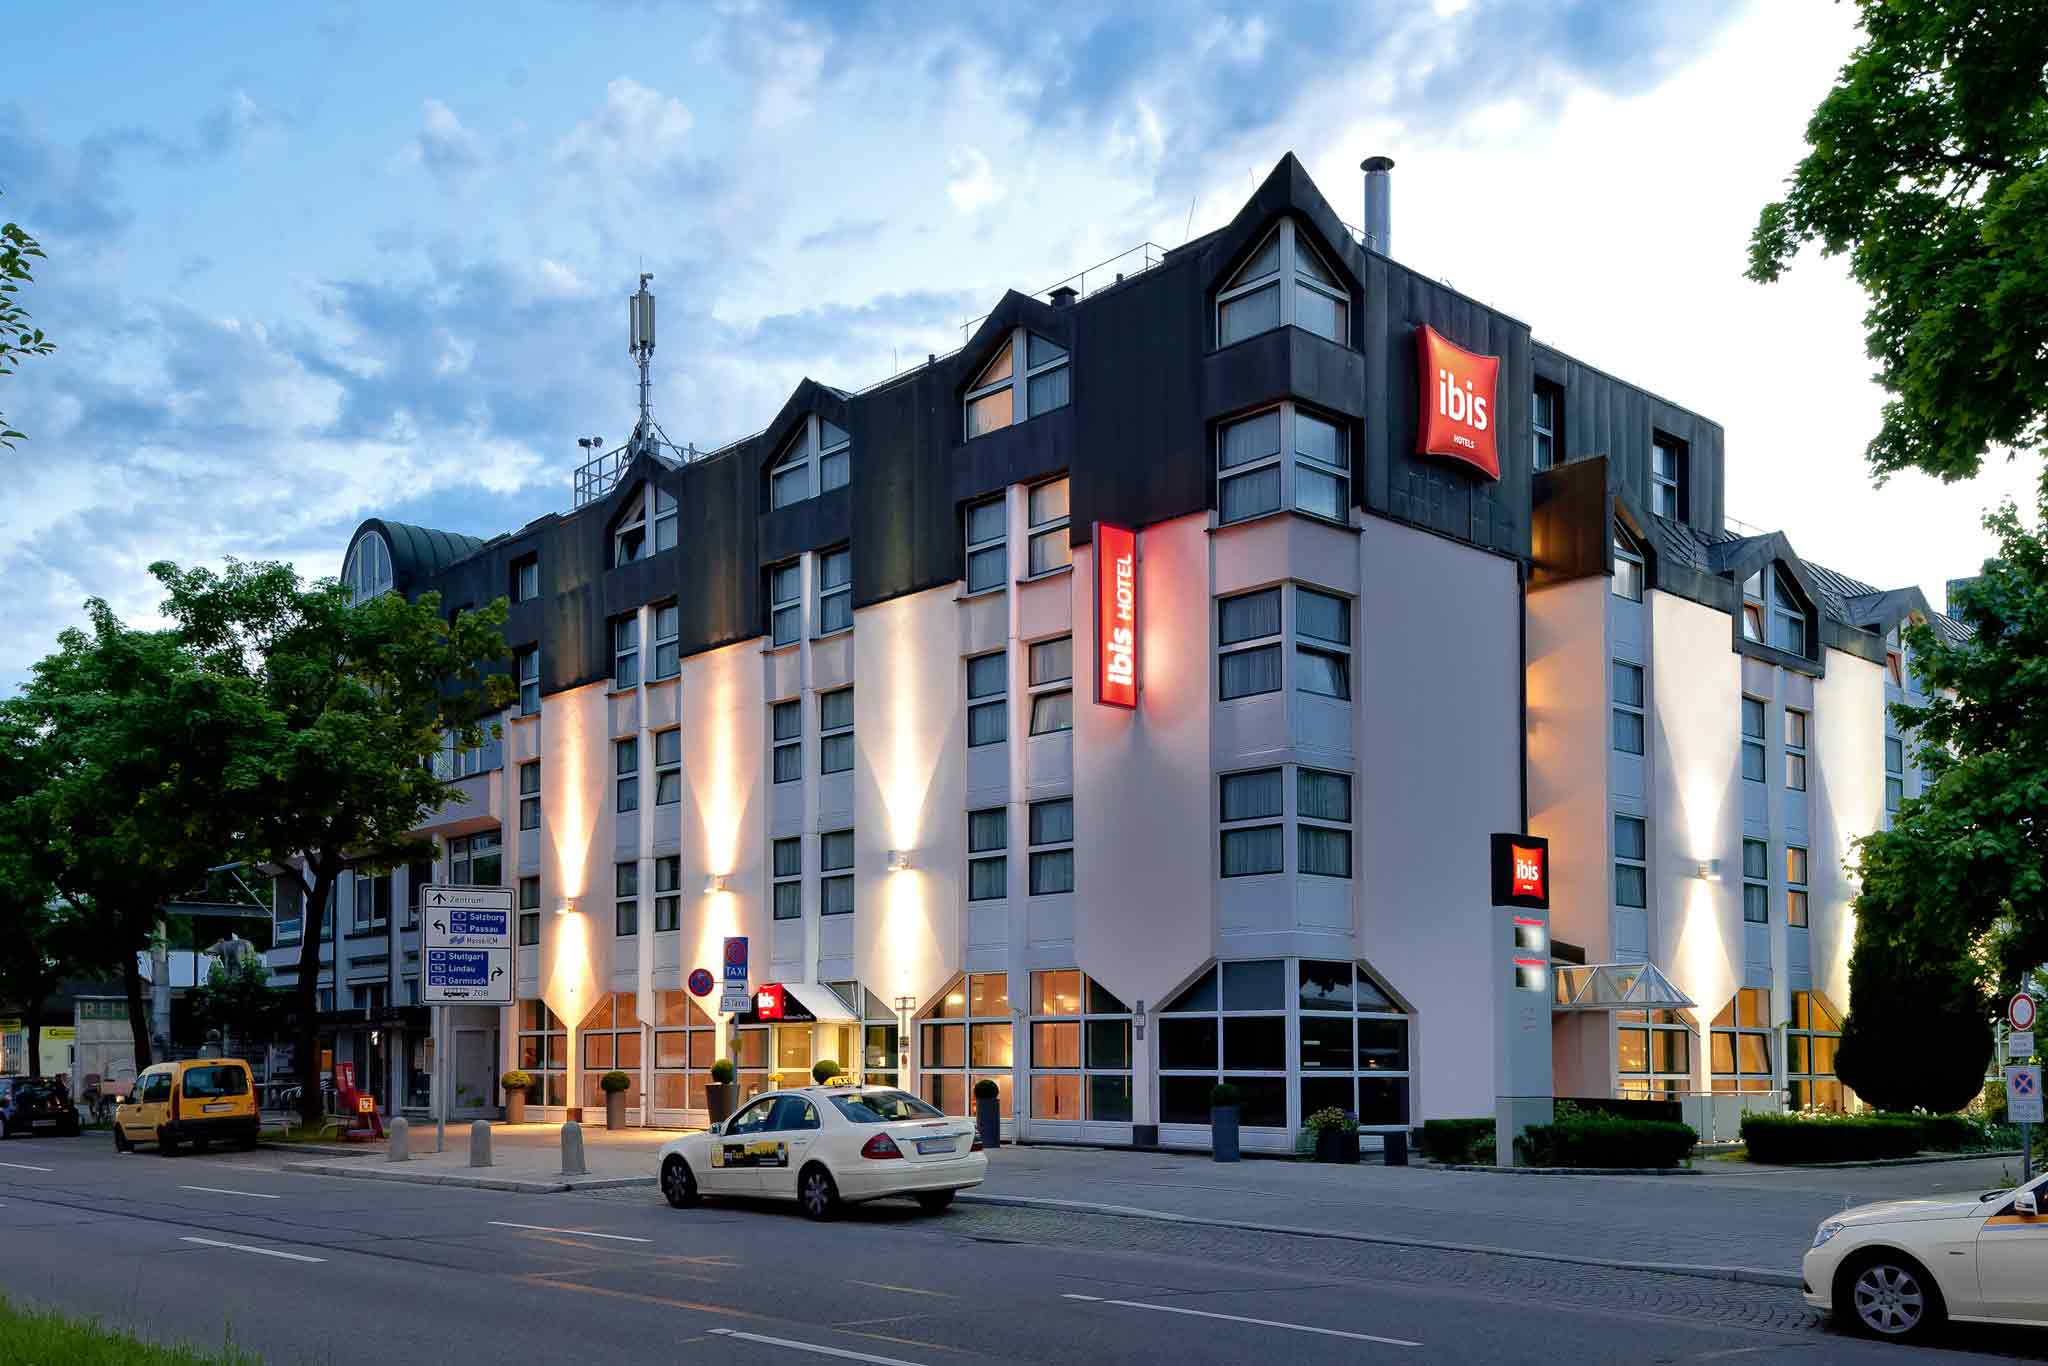 Hotel ibis Munich City Nord Book online now Free Wifi